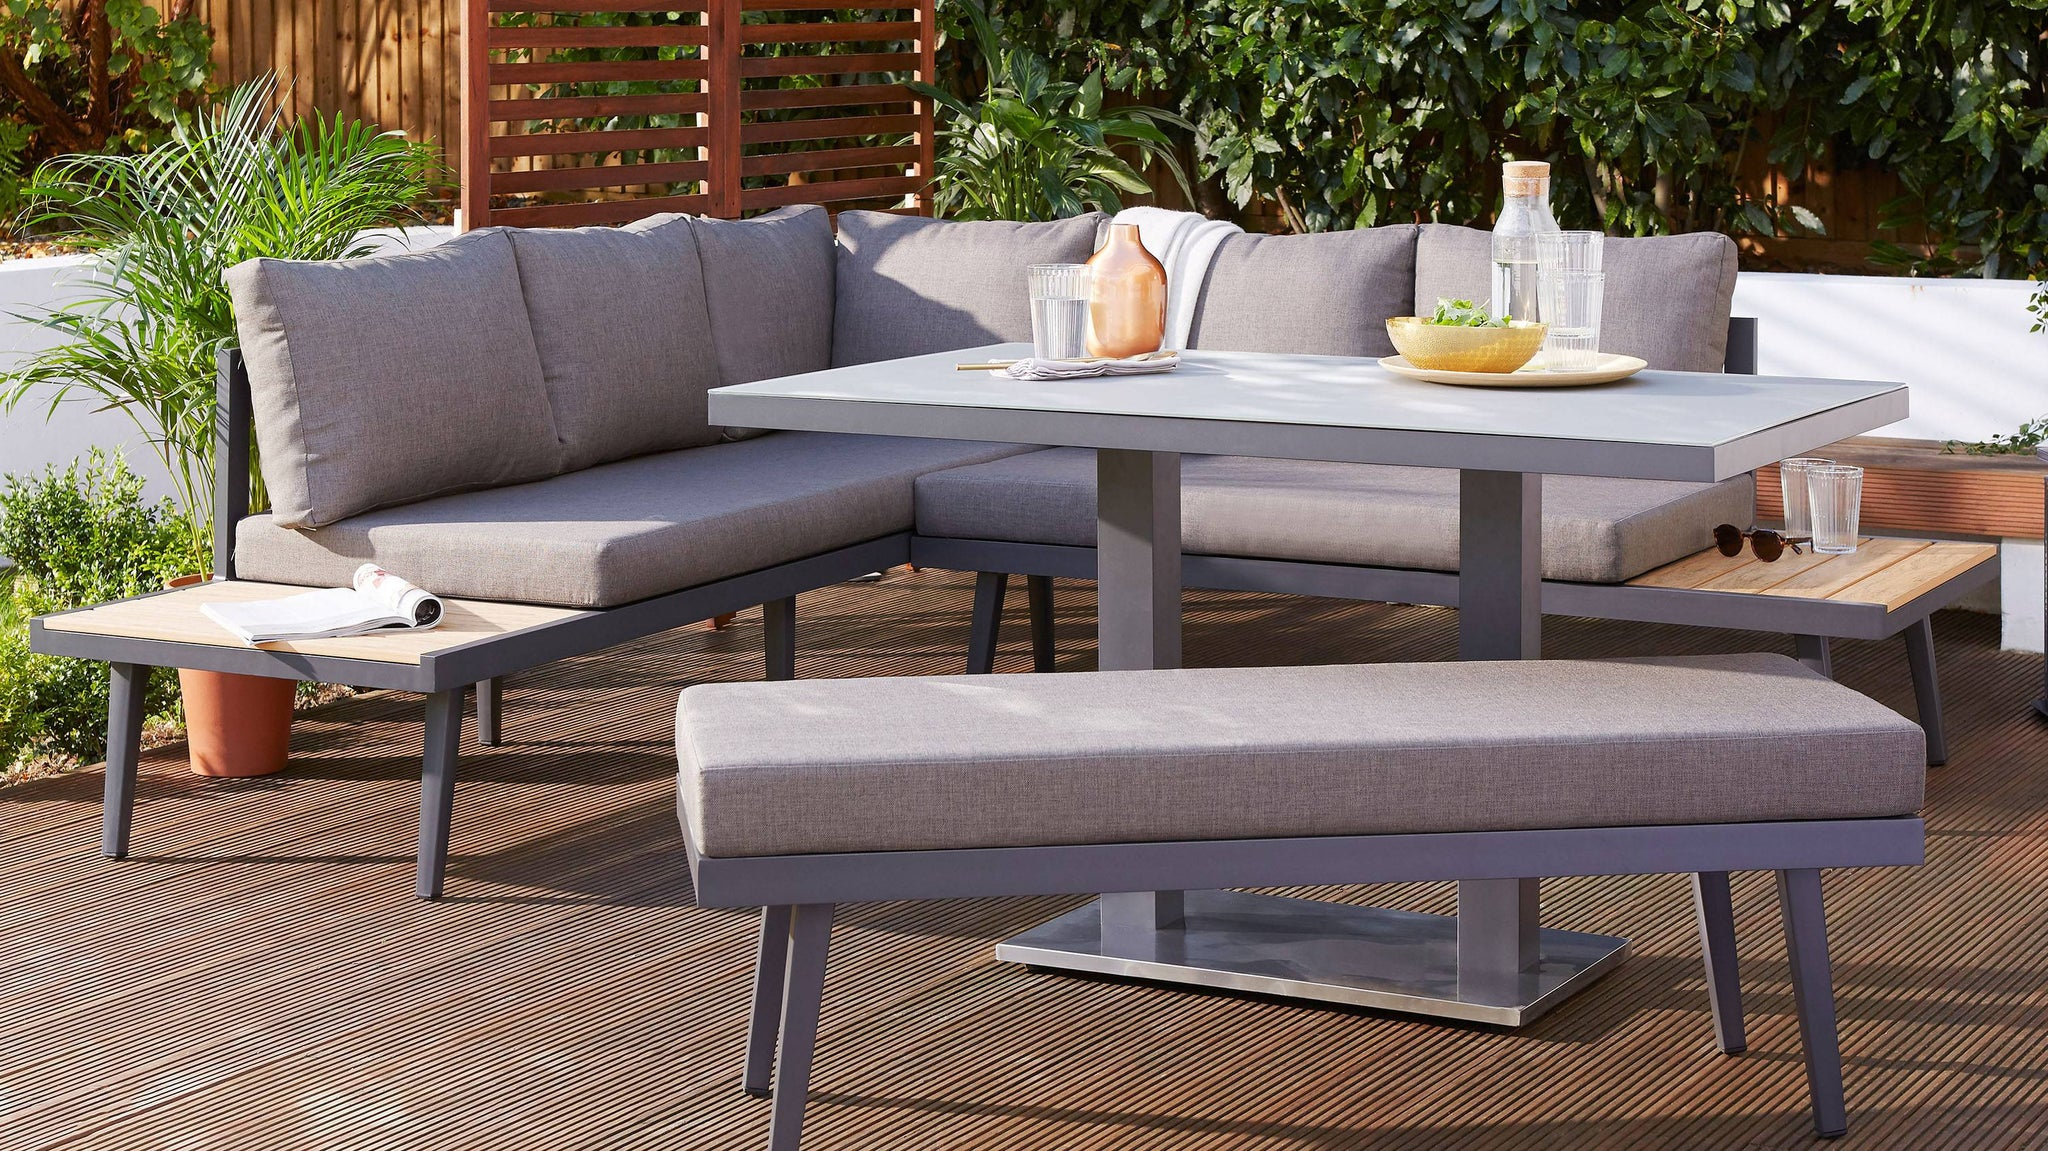 Z DROPPED - Palermo Grey 2 Seater Garden Bench